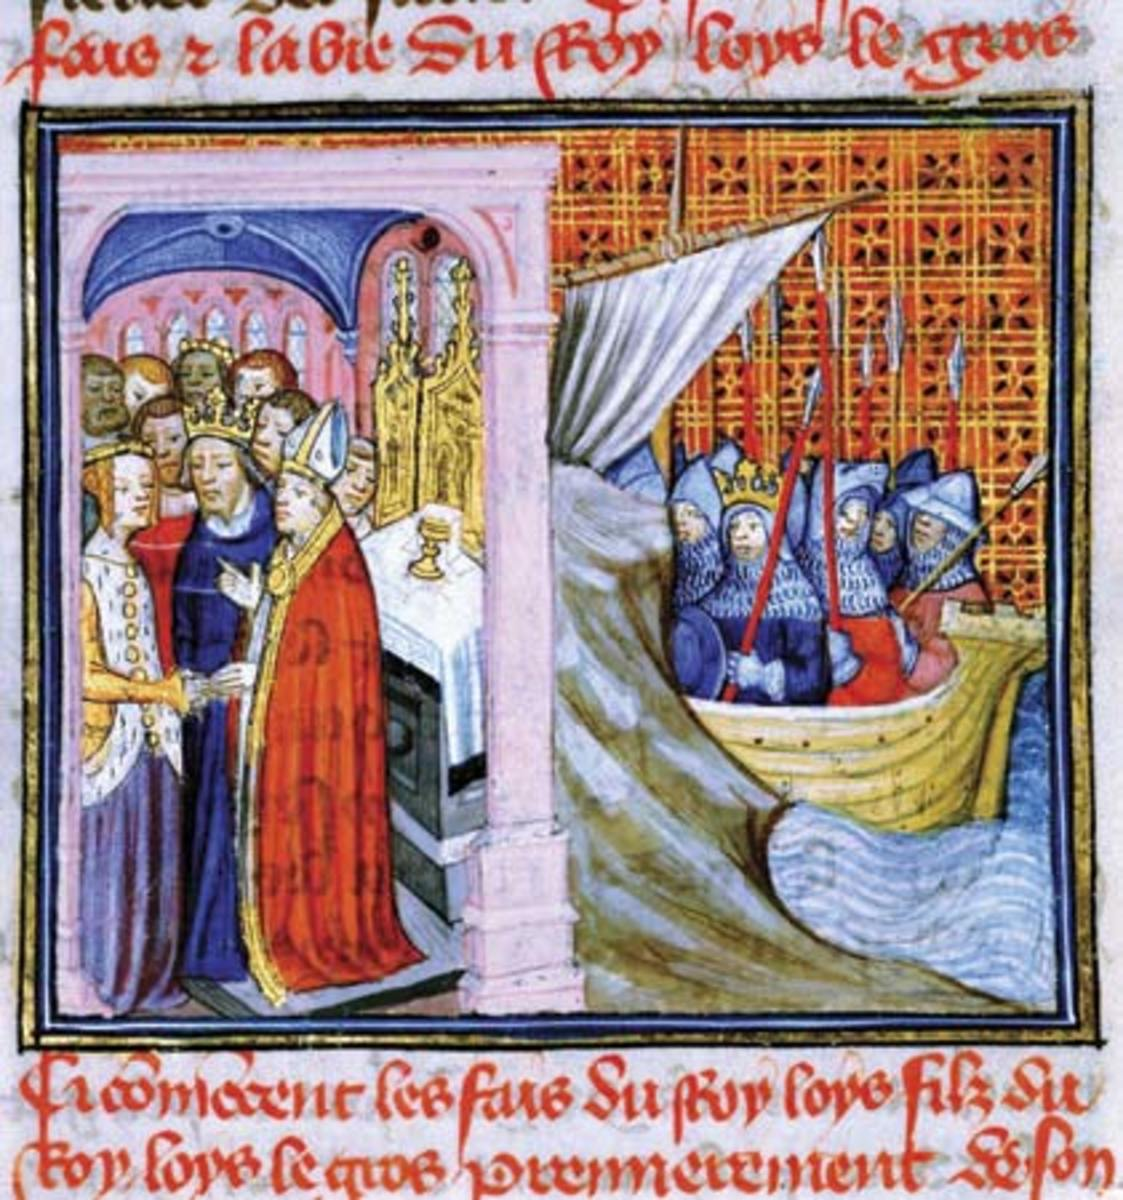 Louis VII marrying Eleanor of Aquitaine ... and then sailing off to the Crusades.